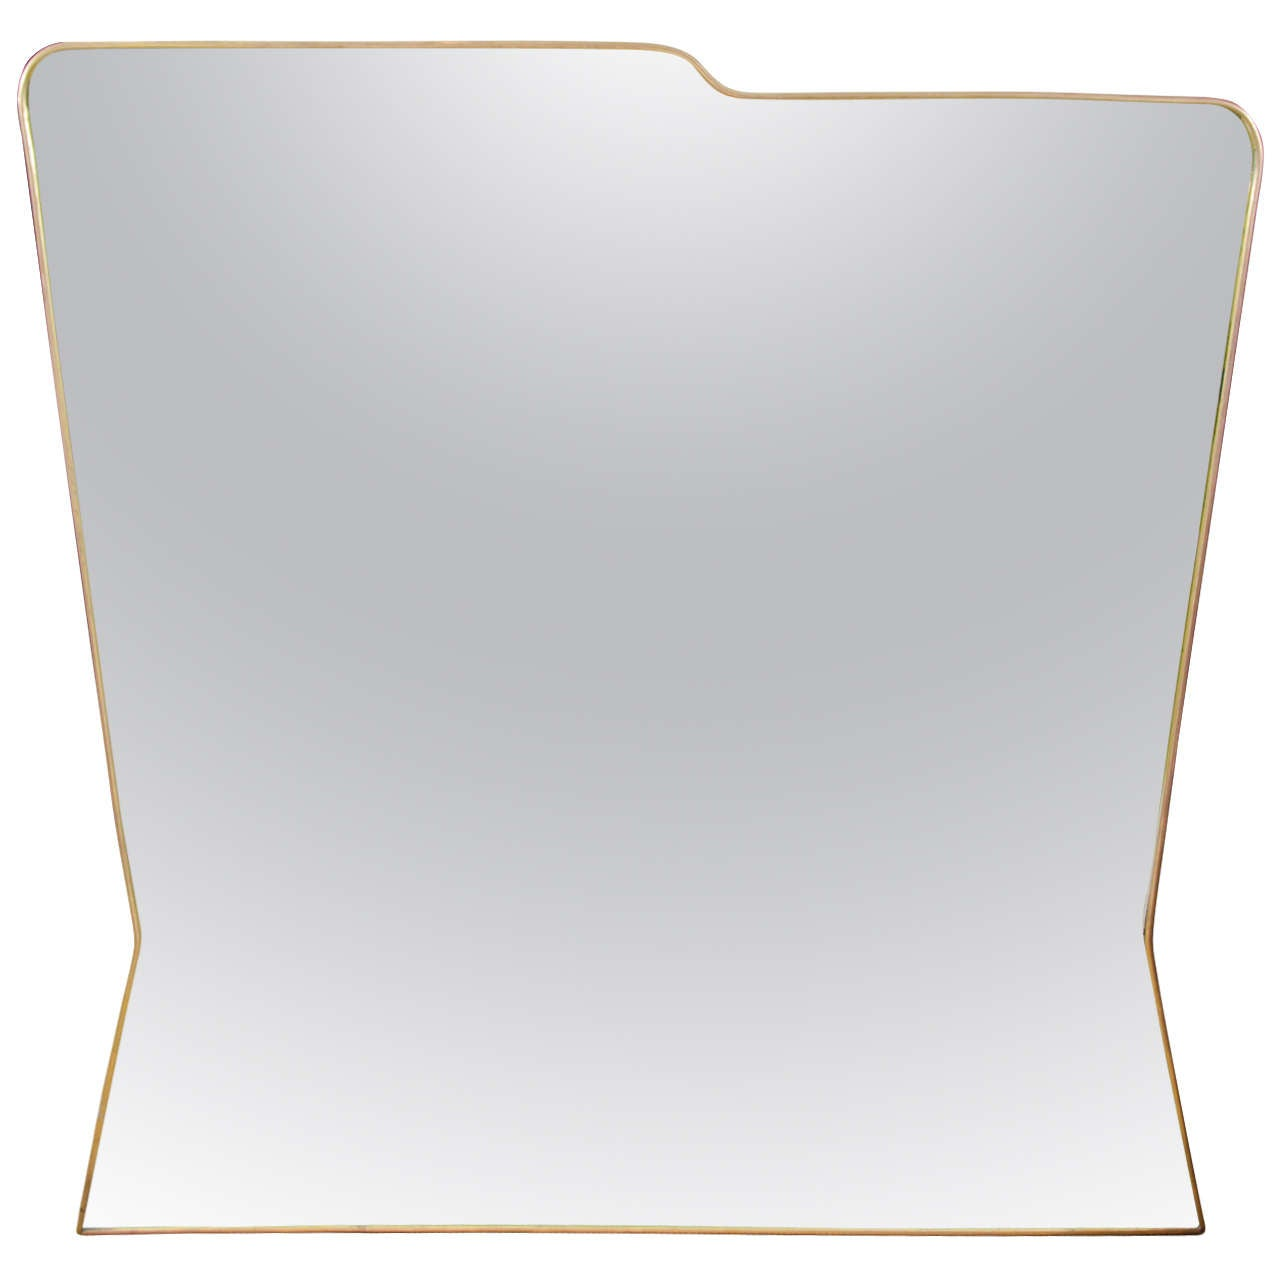 Made to Order Italian Modernist Style Brass Framed Mirror 1